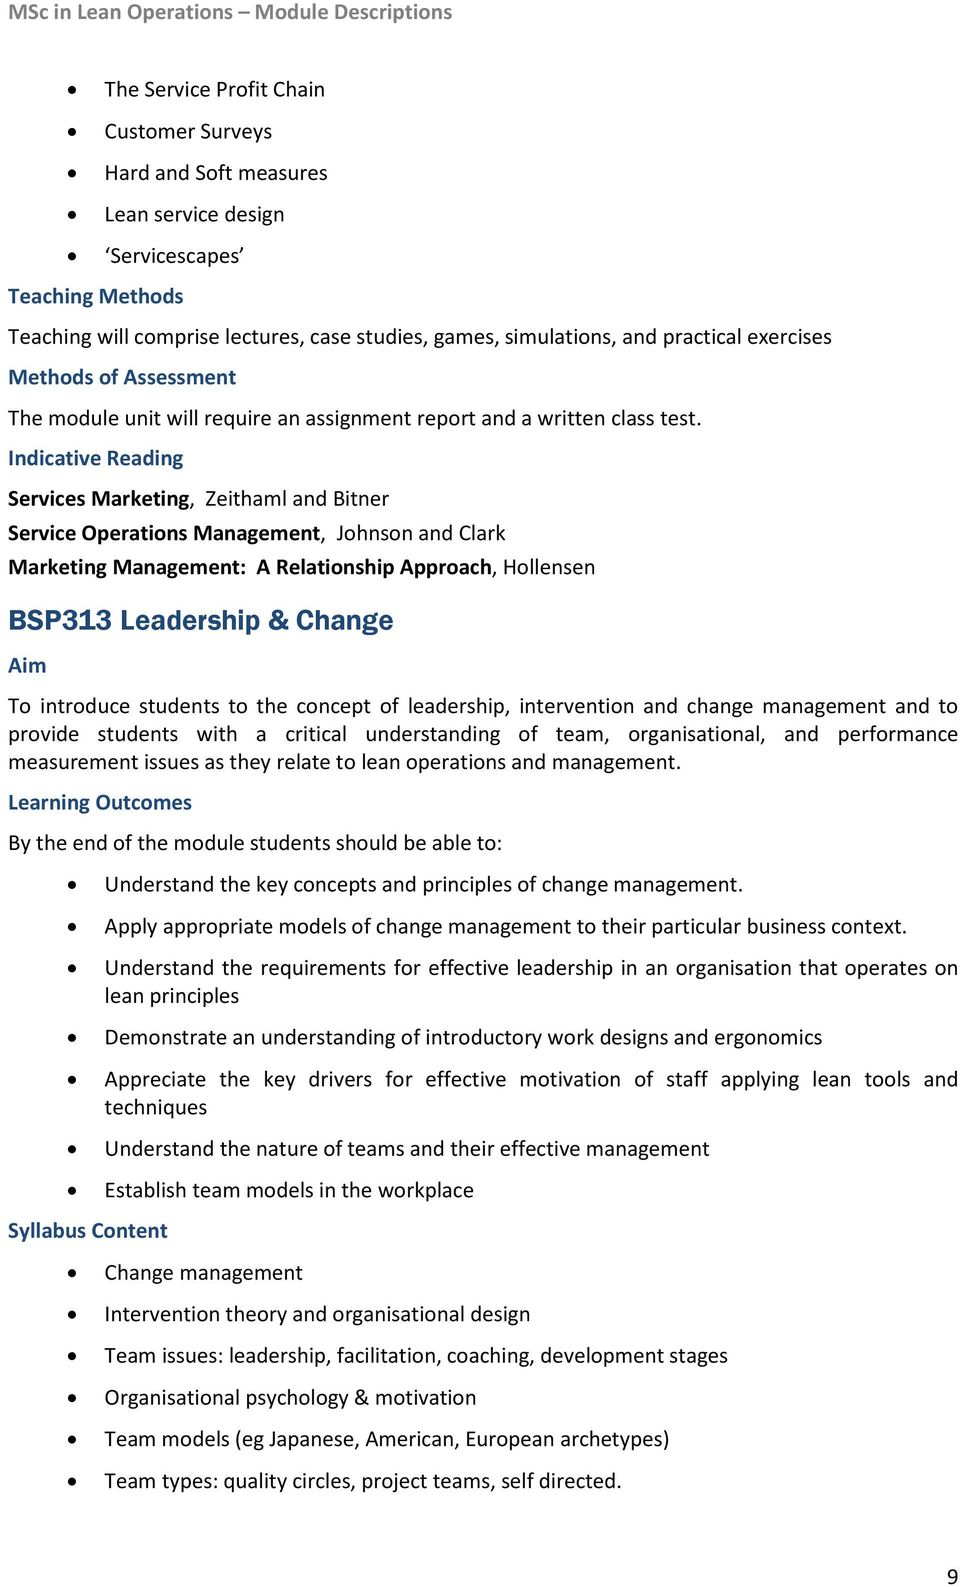 Services Marketing, Zeithaml and Bitner Service Operations Management, Johnson and Clark Marketing Management: A Relationship Approach, Hollensen BSP313 Leadership & Change To introduce students to